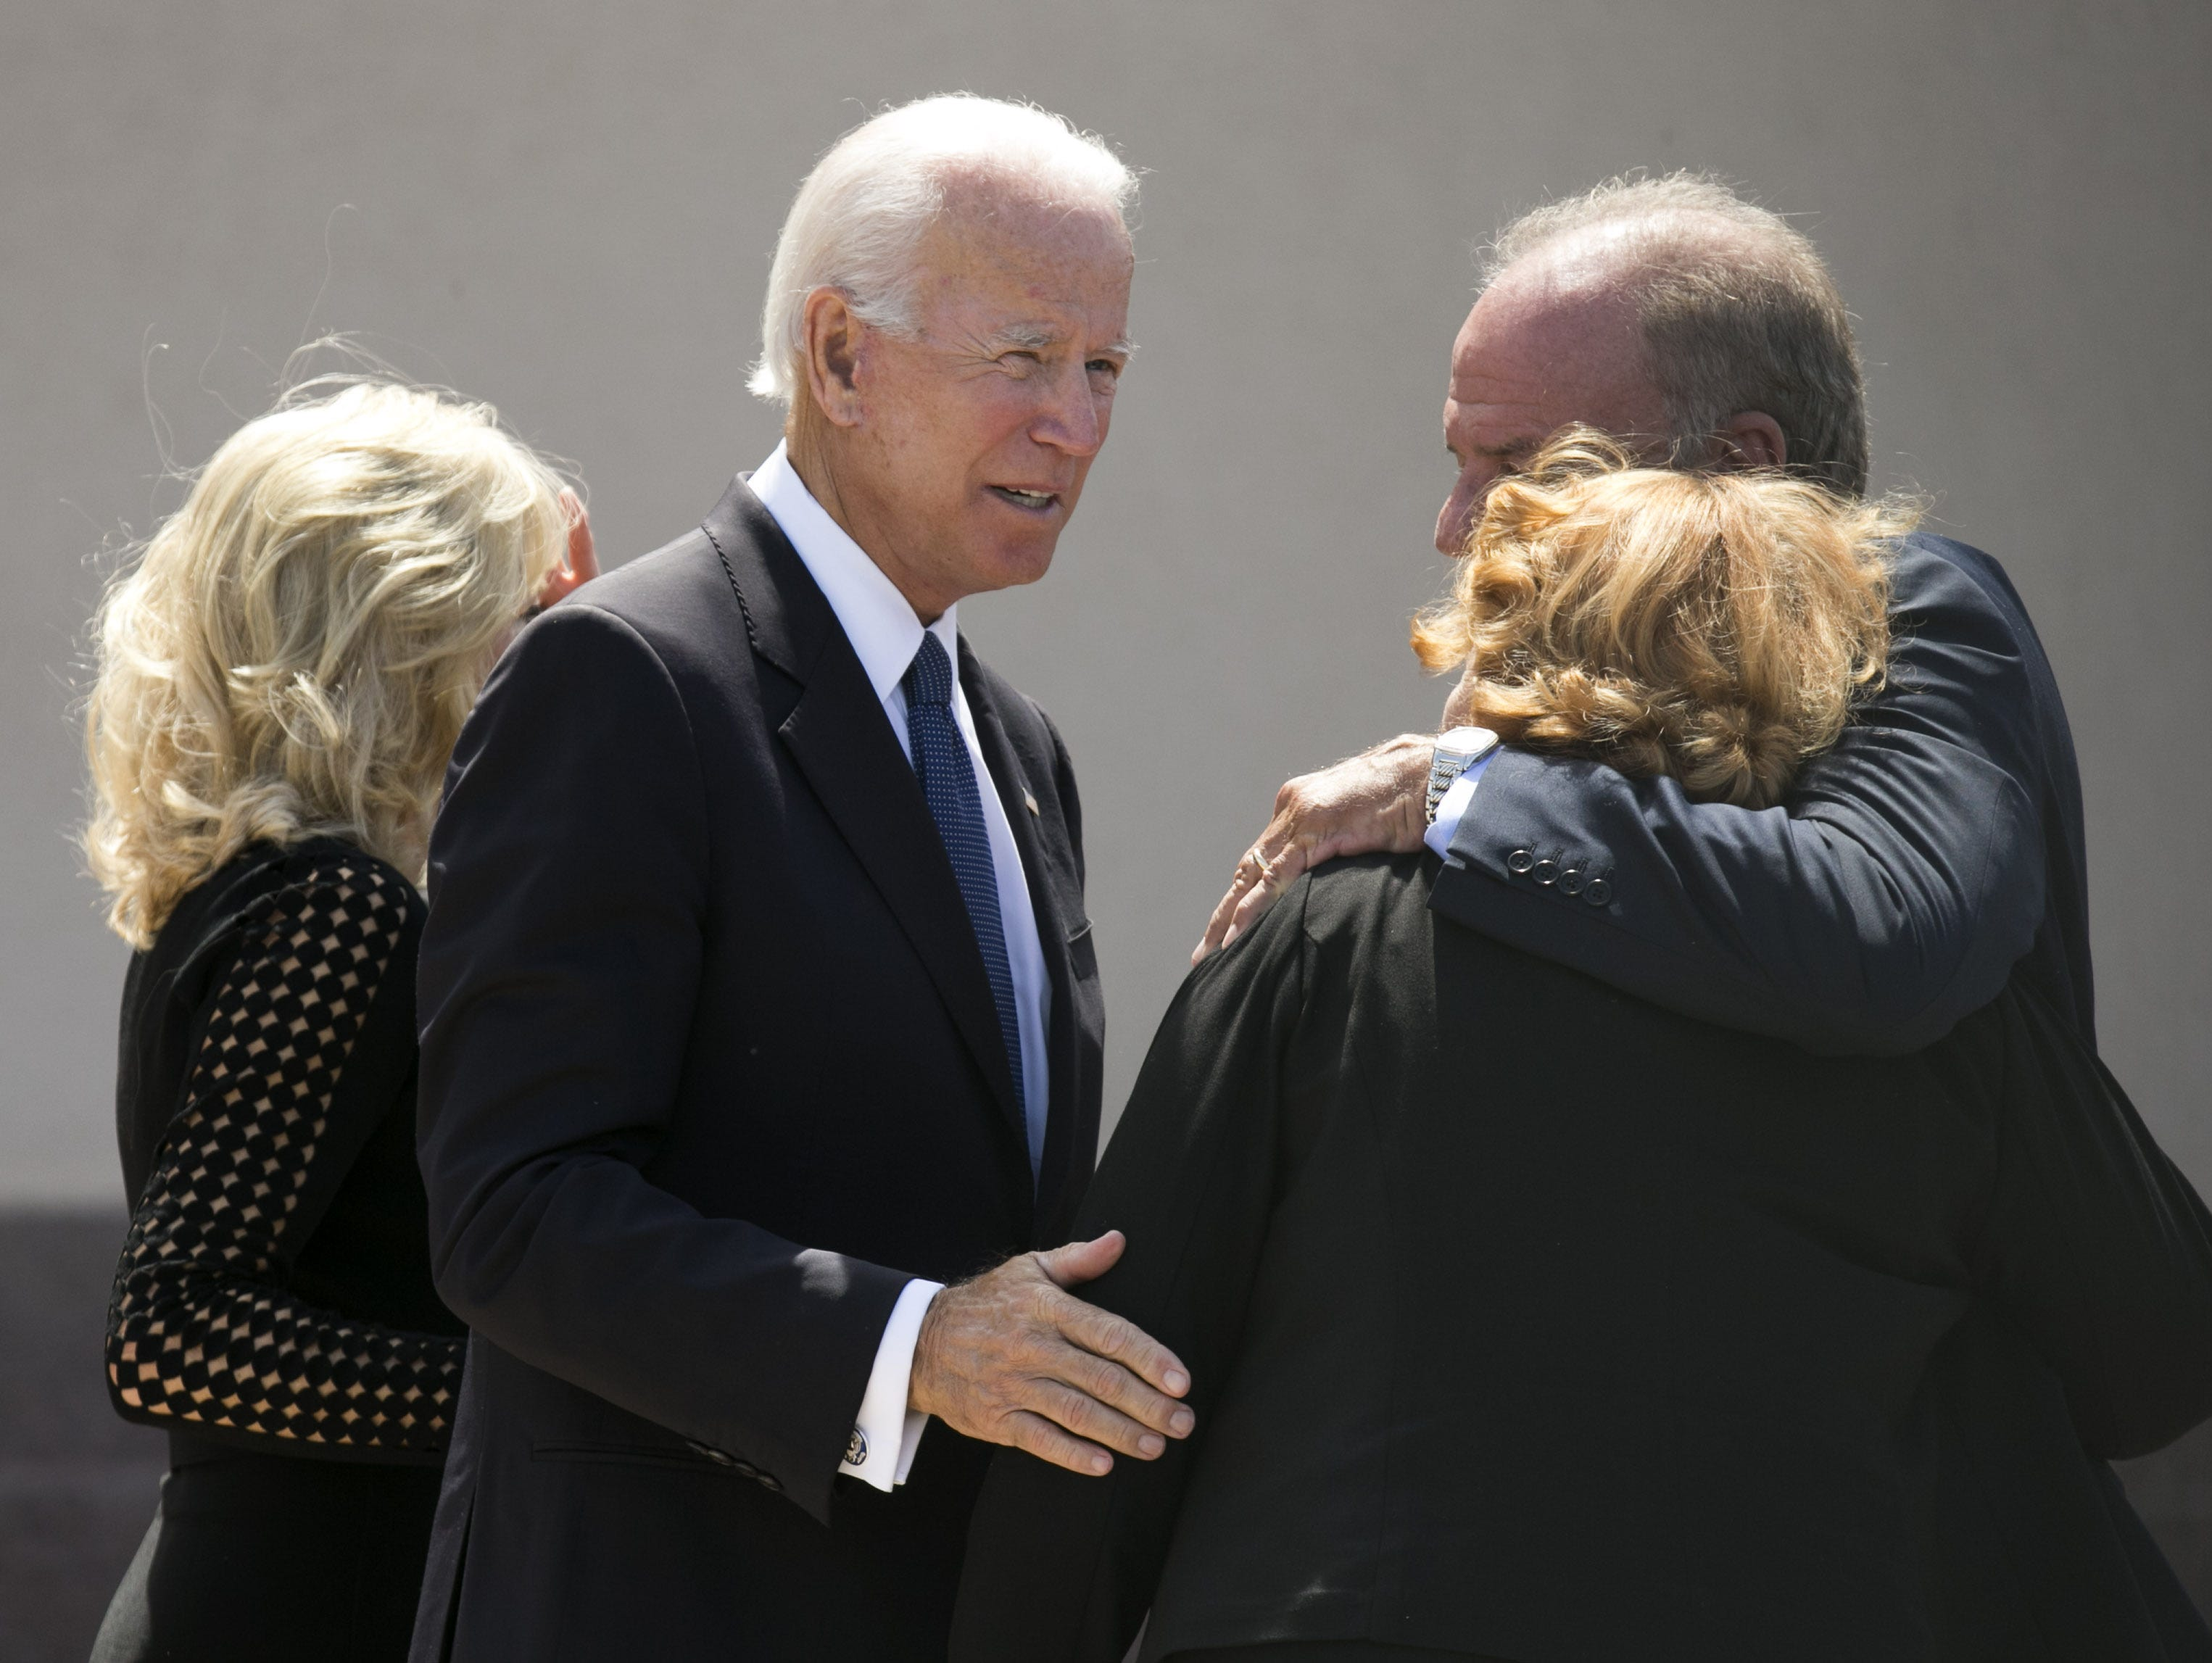 Former Vice President Joe Biden, looks on following a memorial service for Senator John McCain at North Phoenix Baptist Church in Phoenix, Aug. 30, 2018.